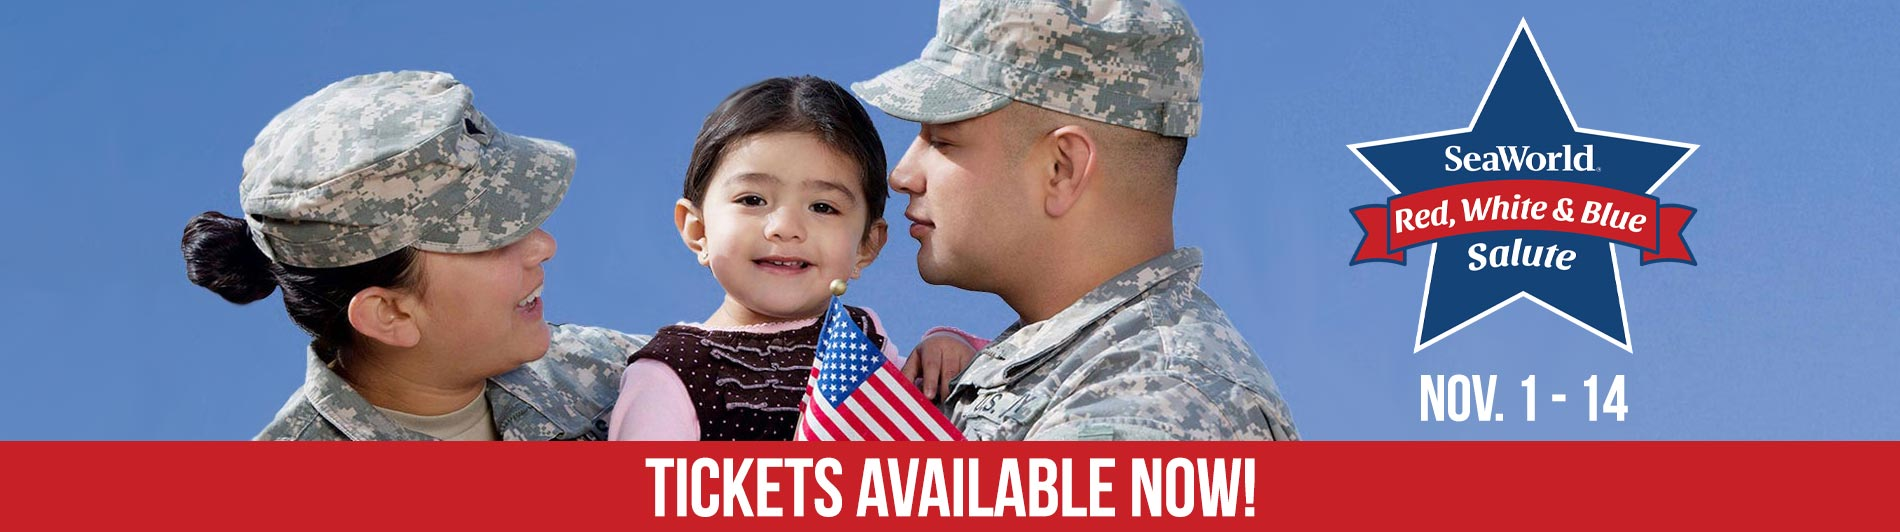 Red White and Blue Salute event at SeaWorld San Diego